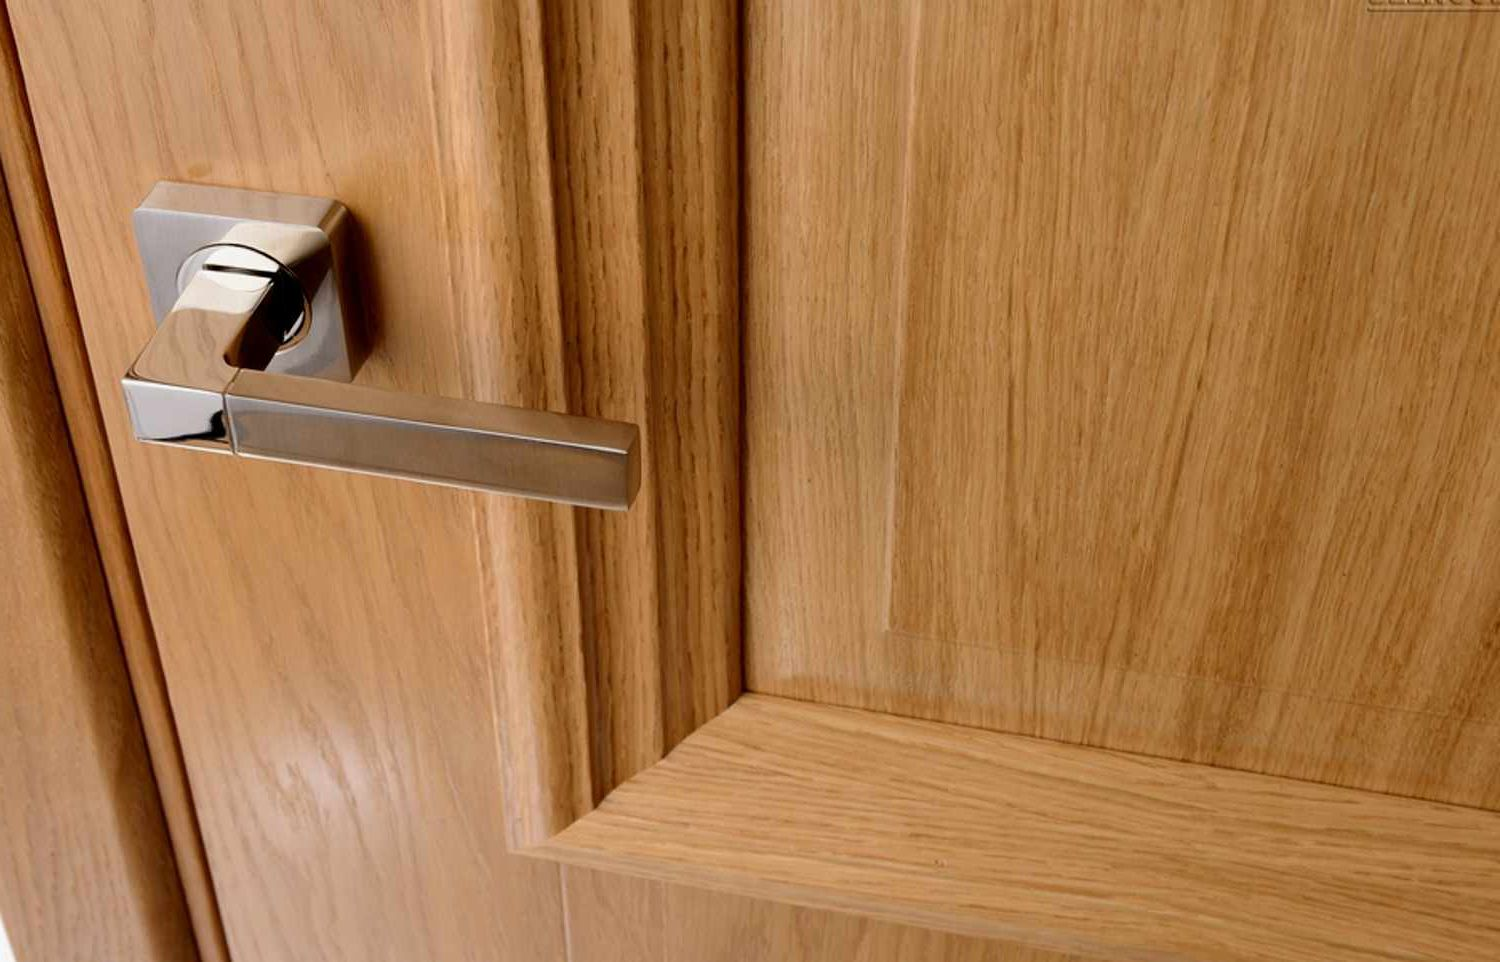 The door covered with wood veneer with a chrome handle